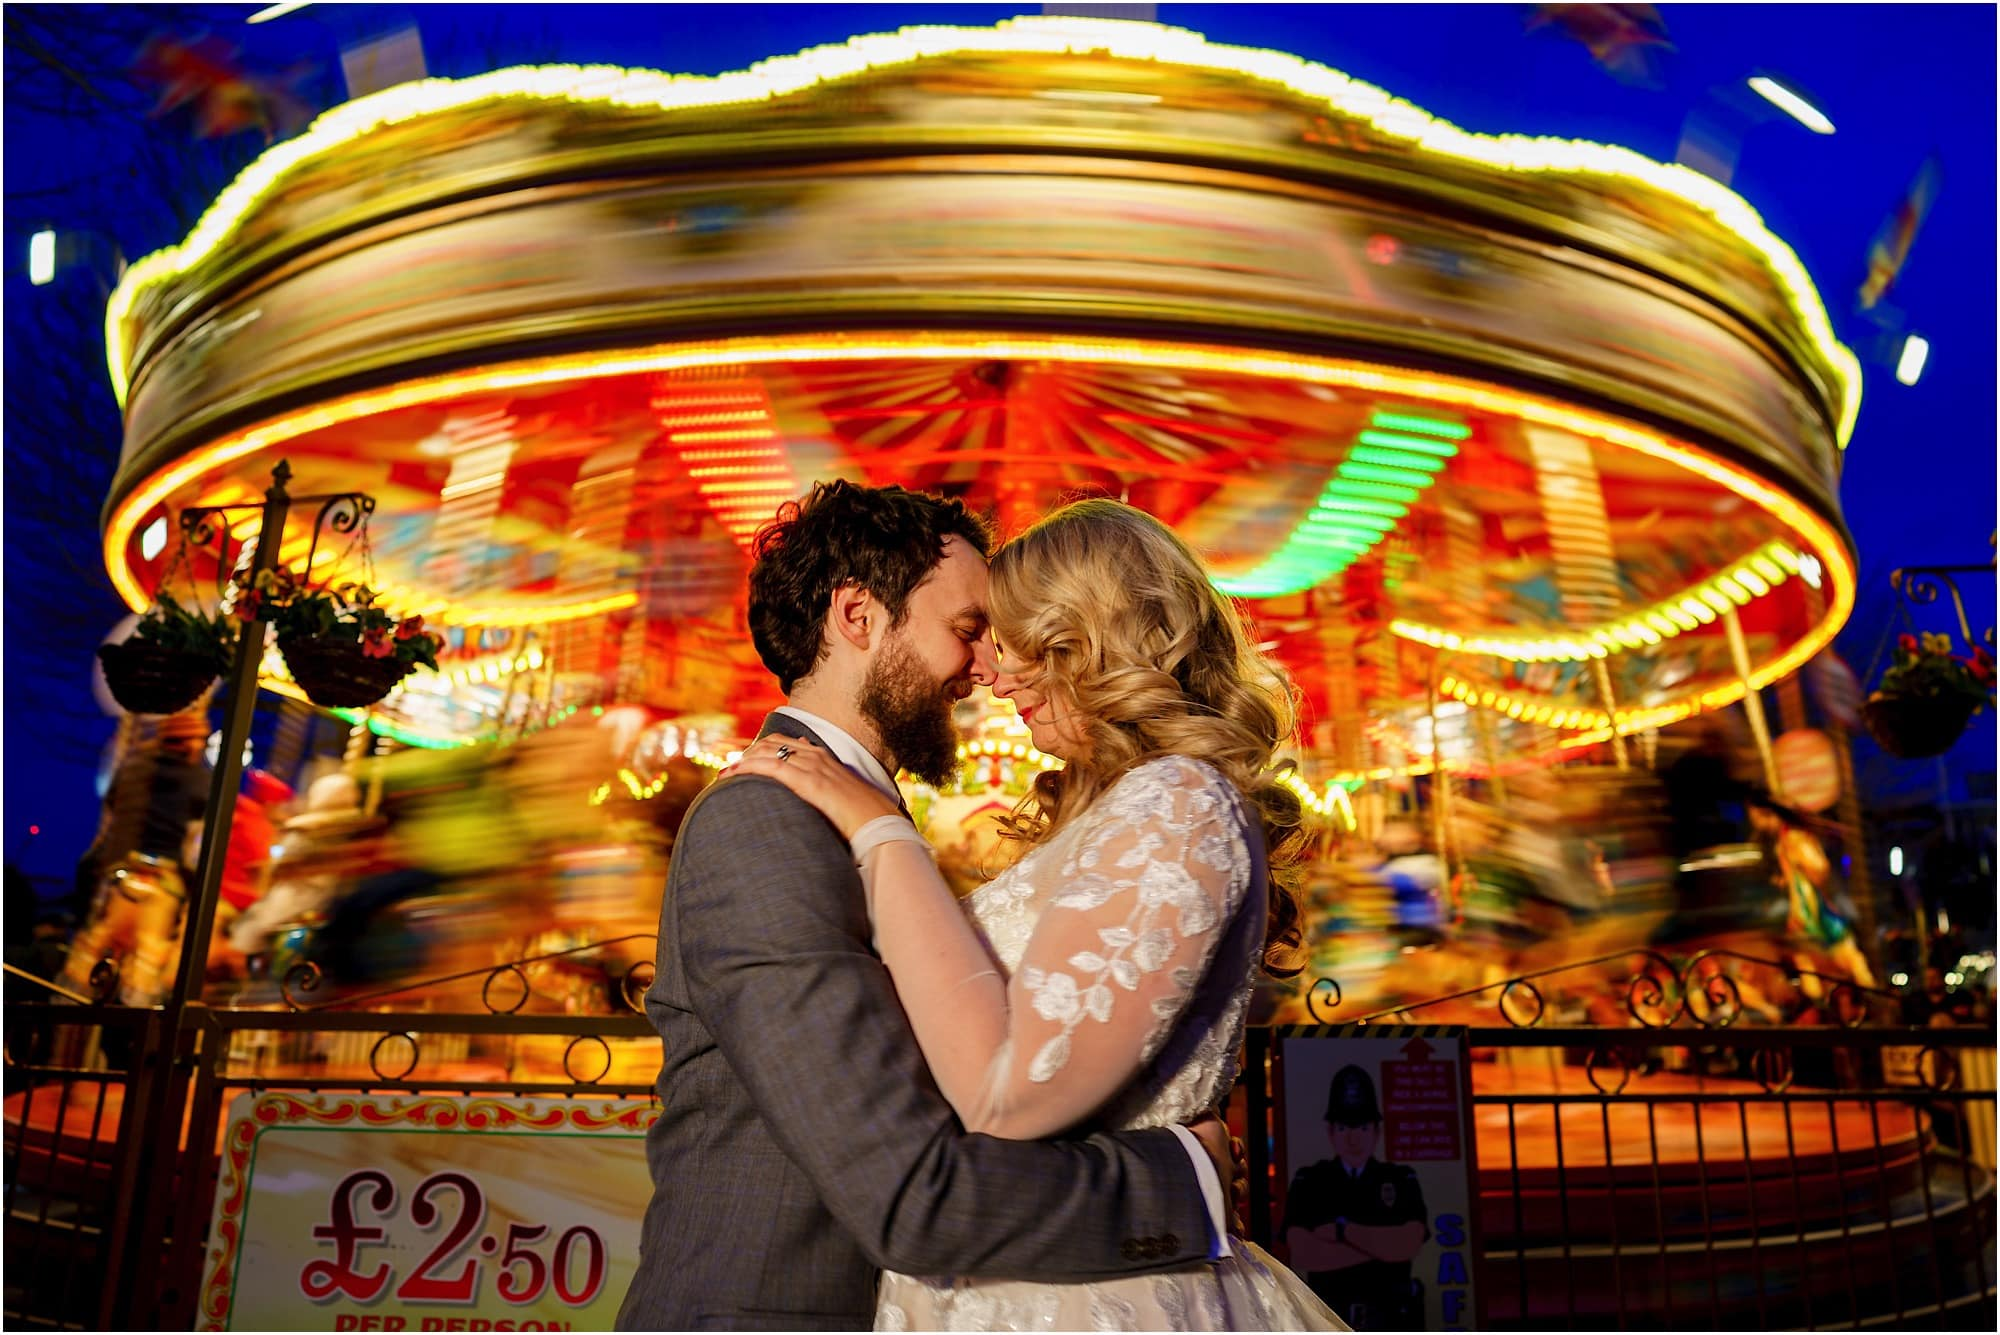 Fairground wedding